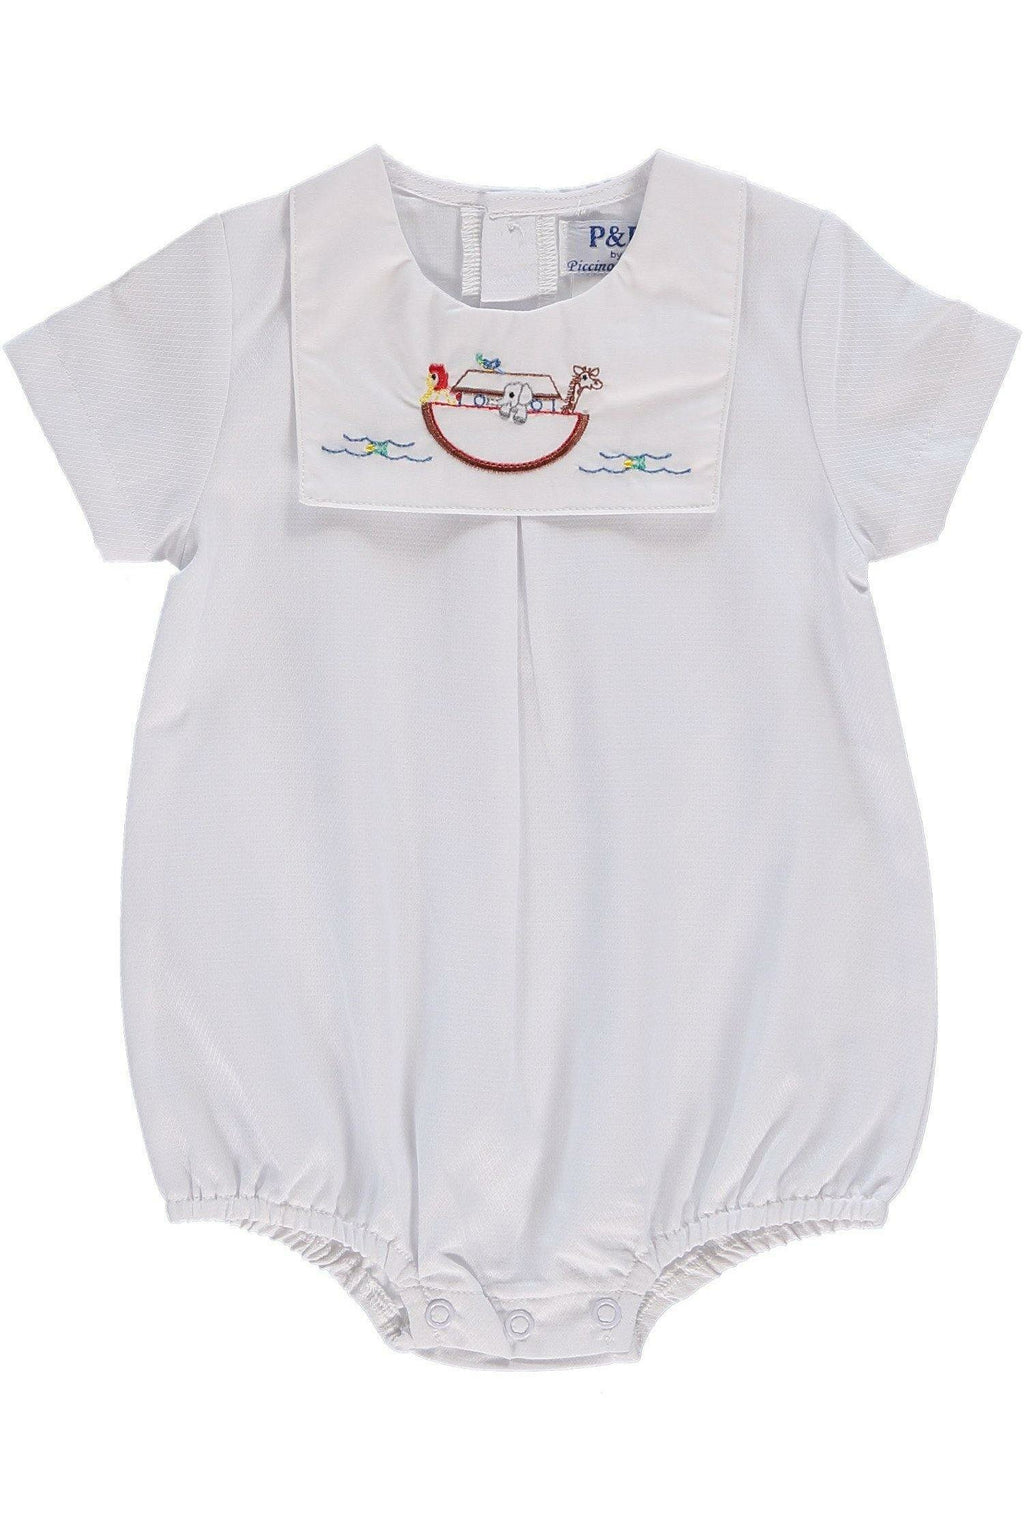 Baby Boy White Noah's Ark Bib Creeper, , Carriage Boutique, Imagewear